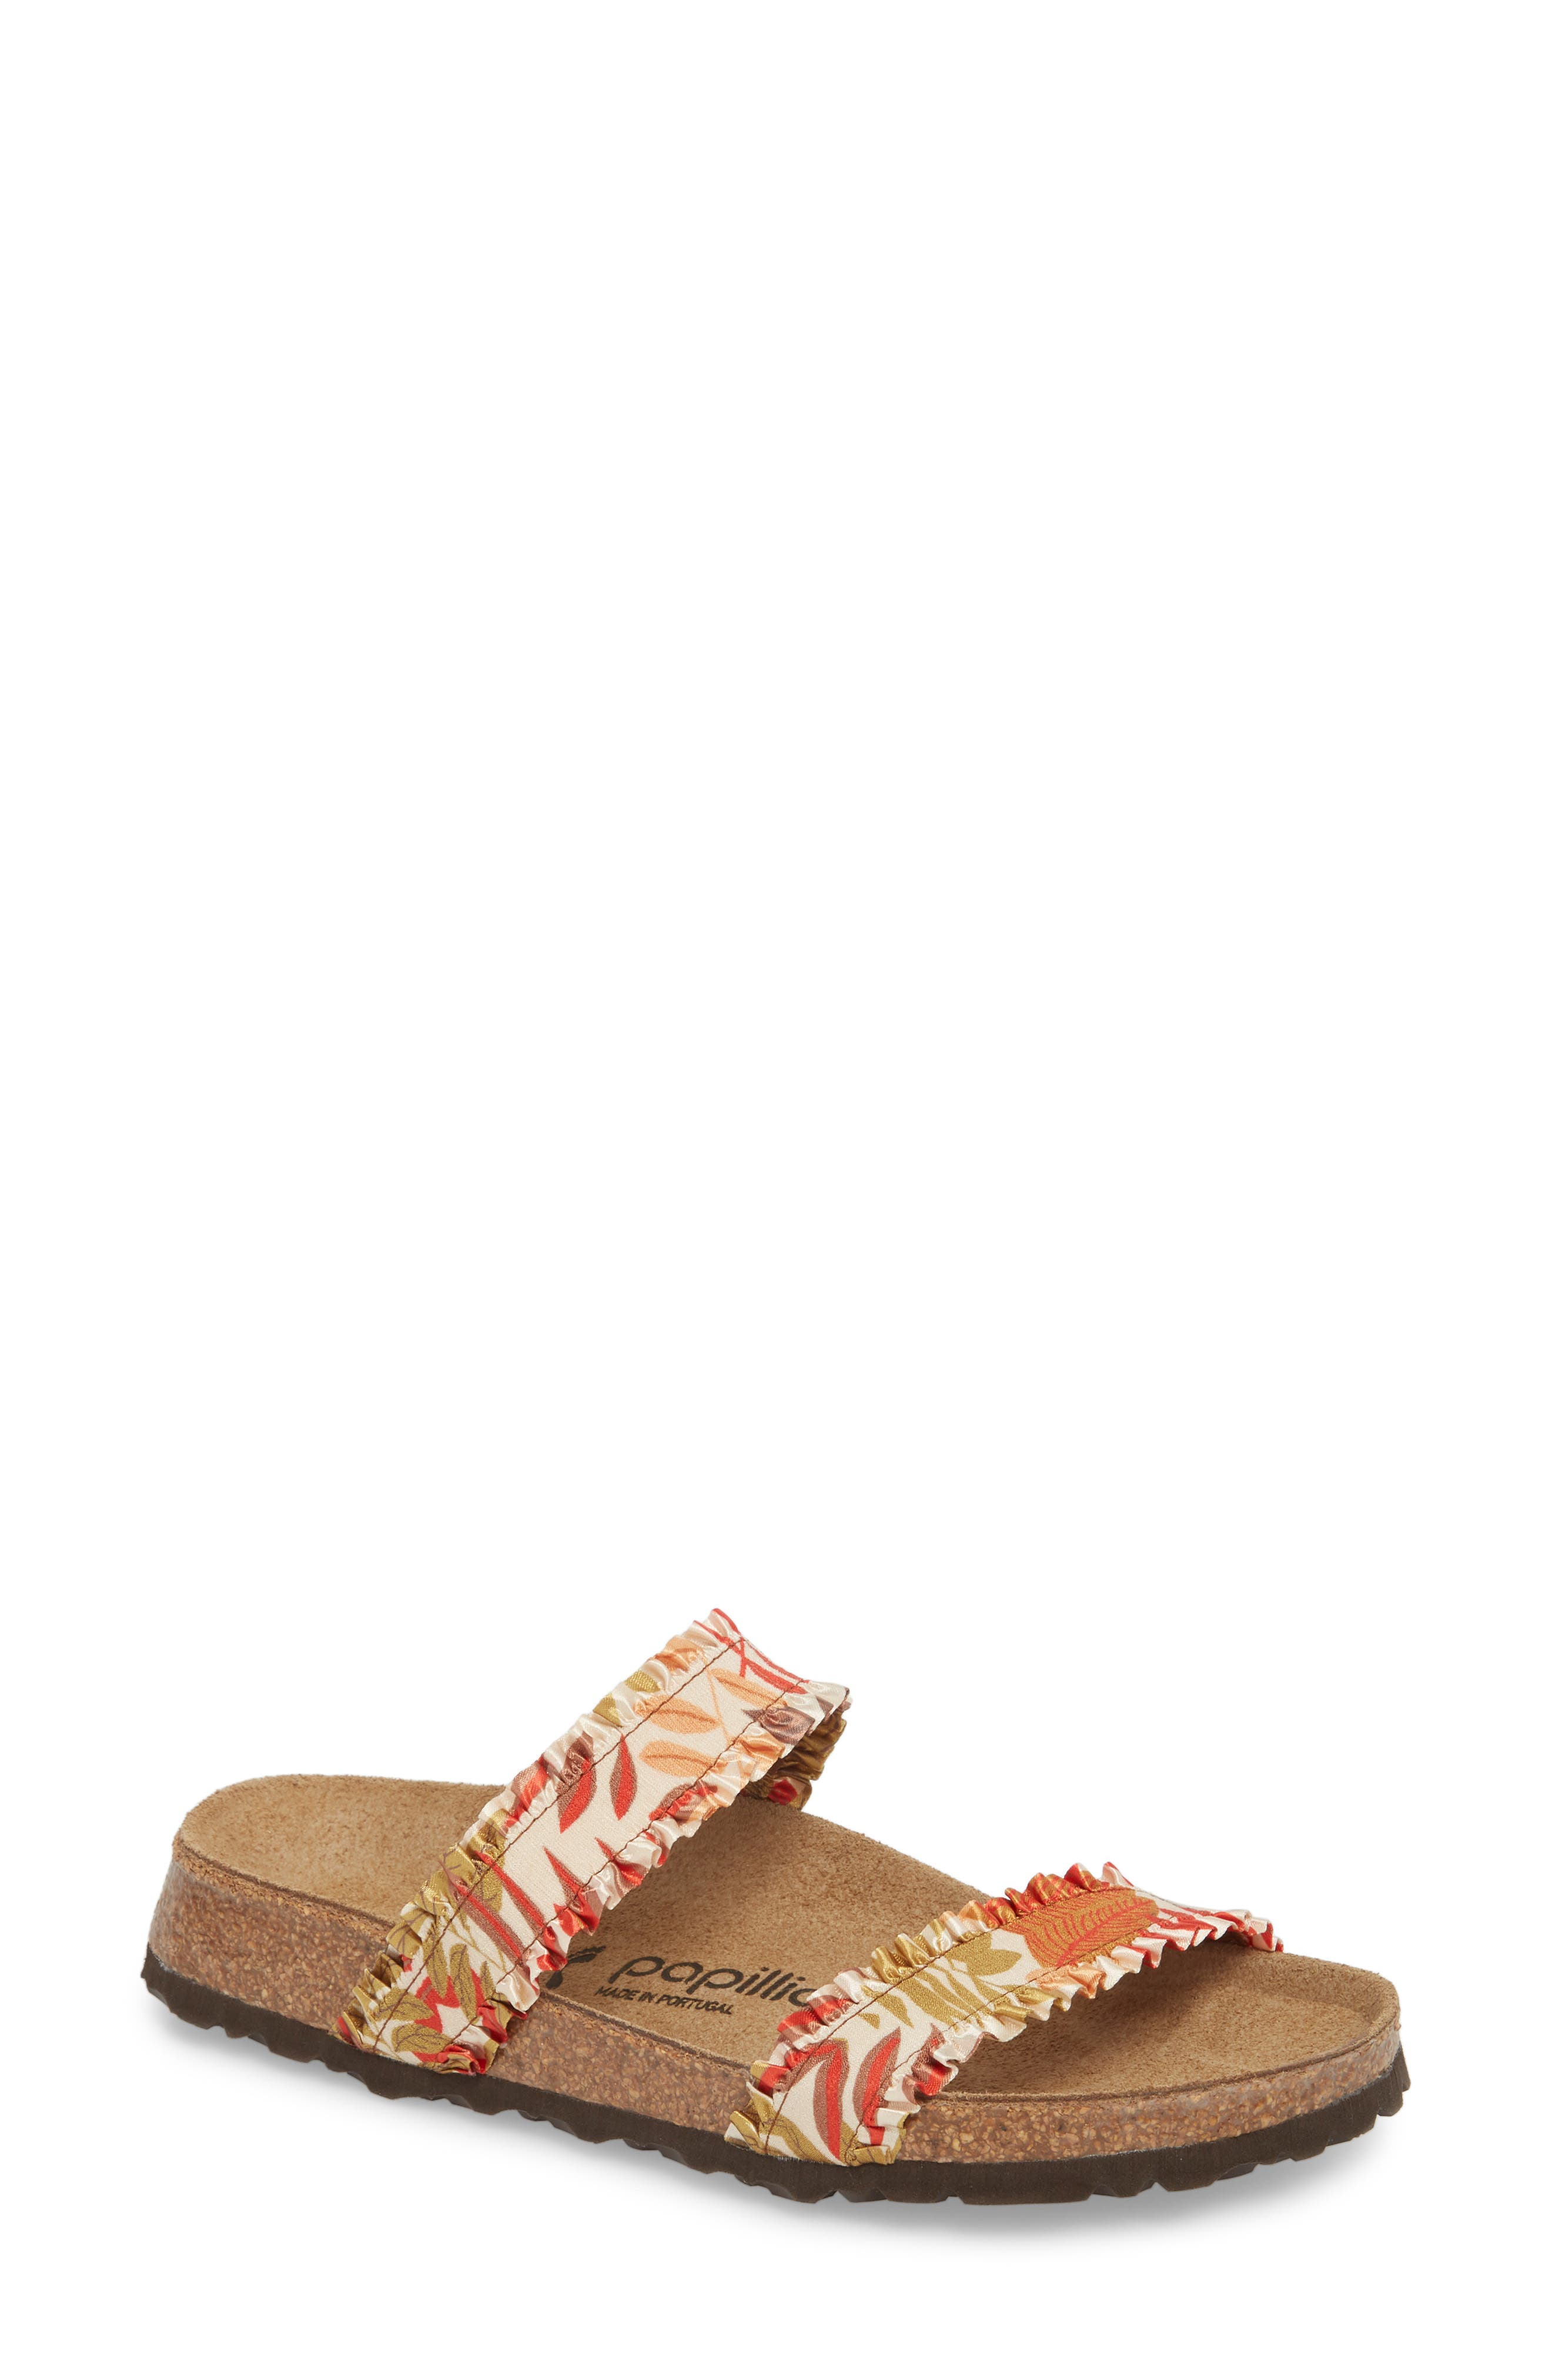 Papillio by Birkenstock Curacao Slide Sandal,                             Main thumbnail 1, color,                             Flower Frill Brown Fabric